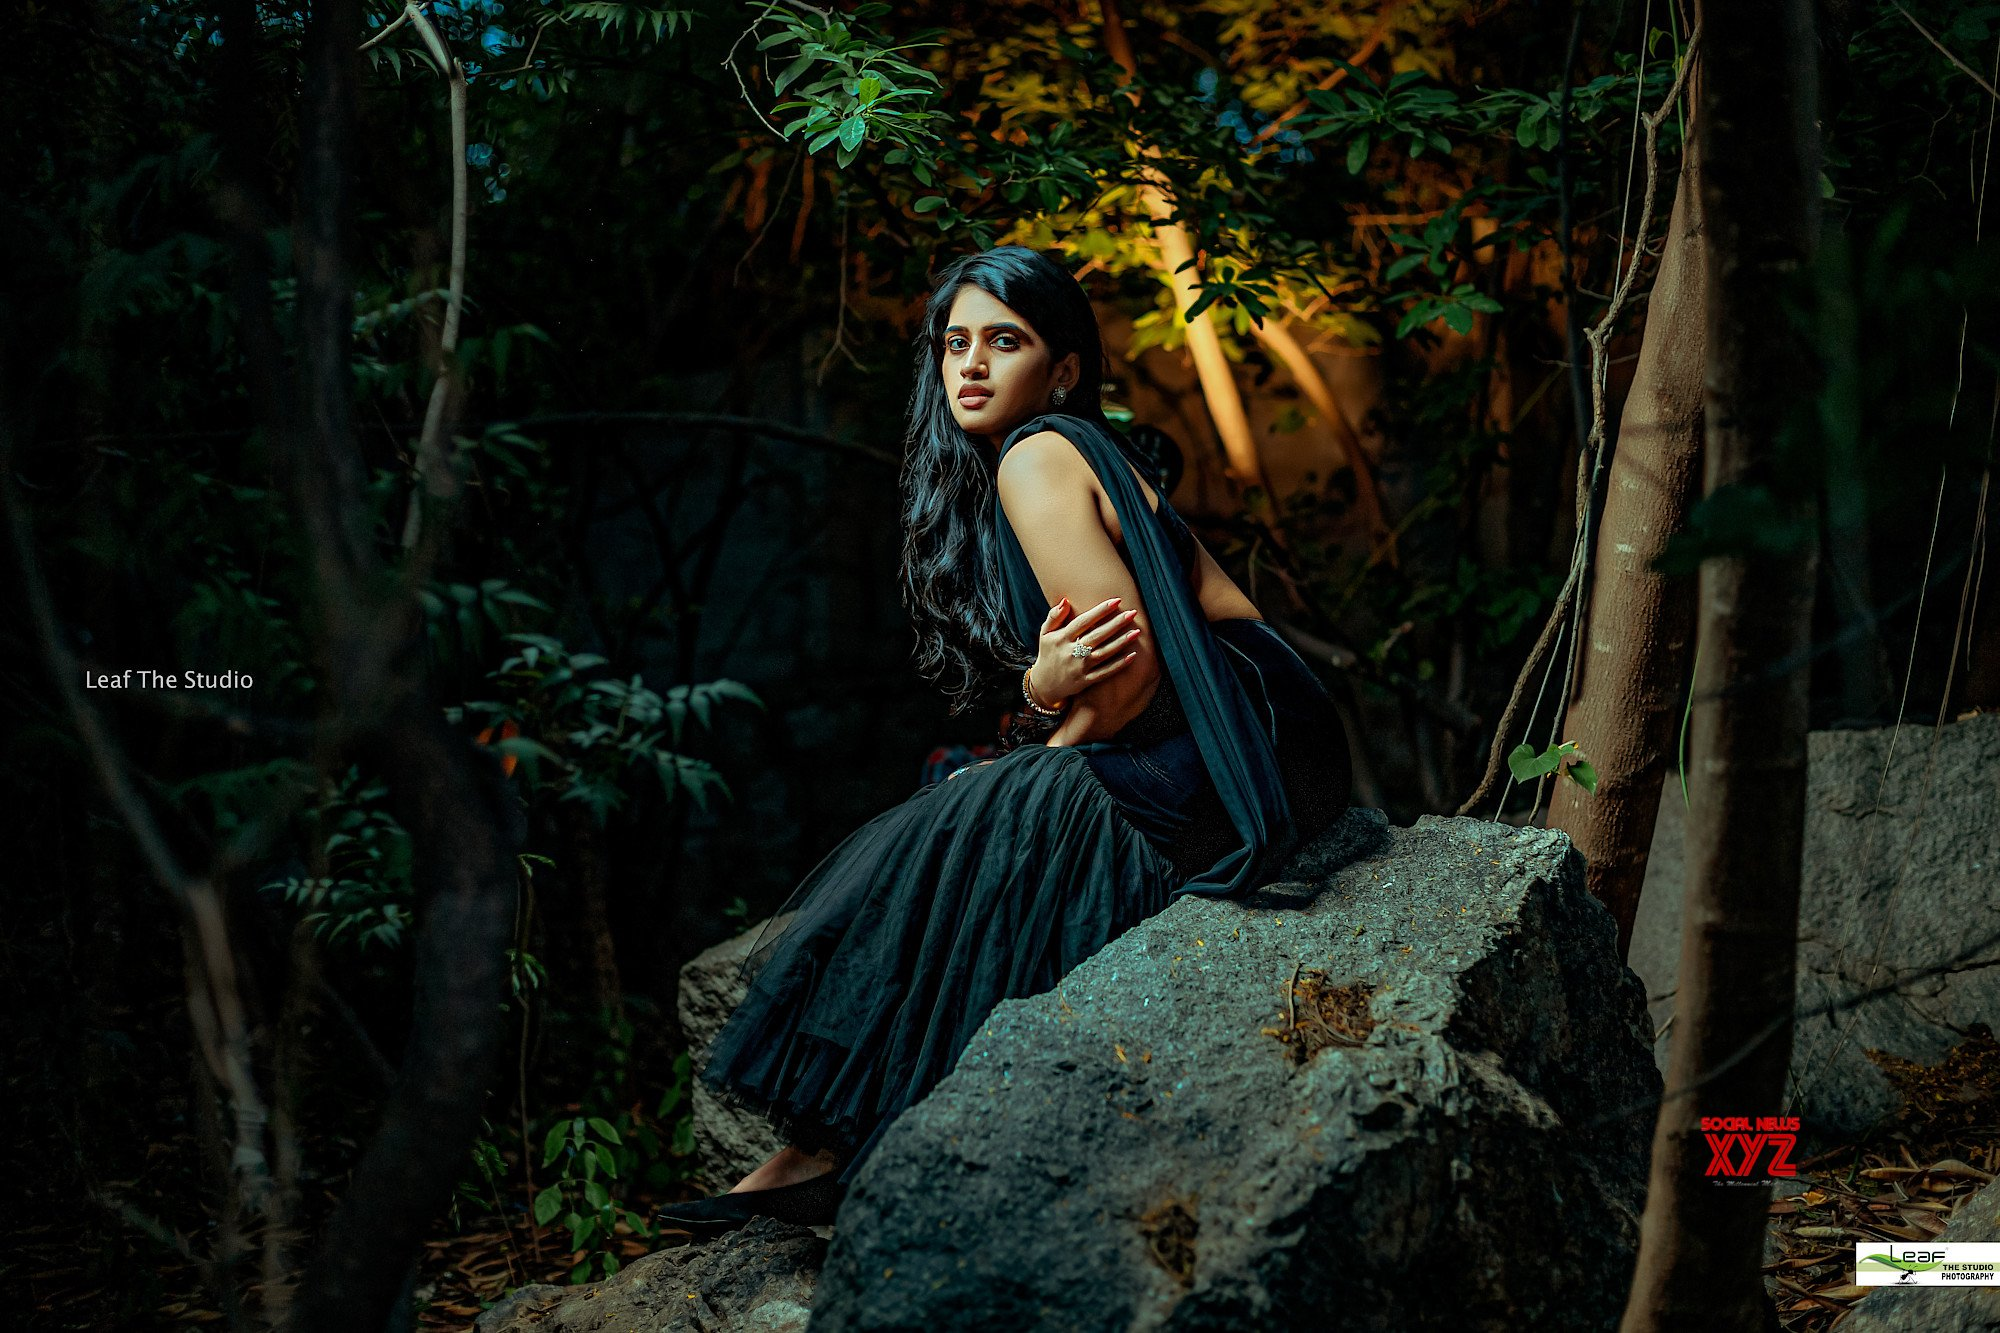 Anchor Sravanthi Glam Stills As Lost Princess From Latest Photoshoot